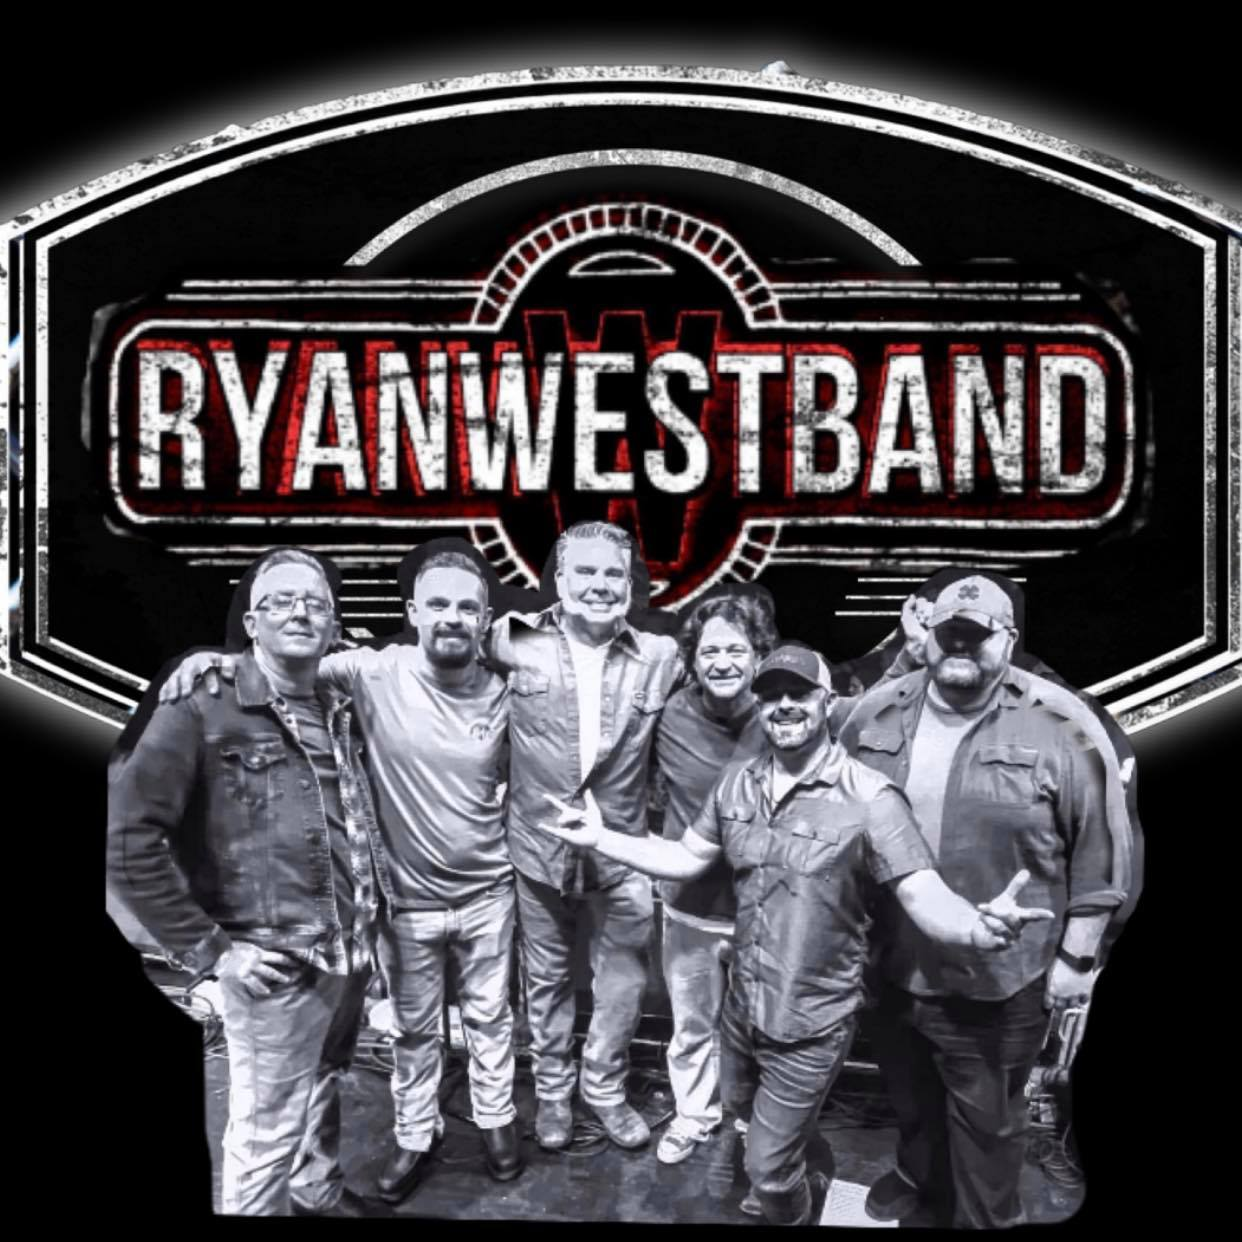 Ryan West Band Returns Live at Tammy's